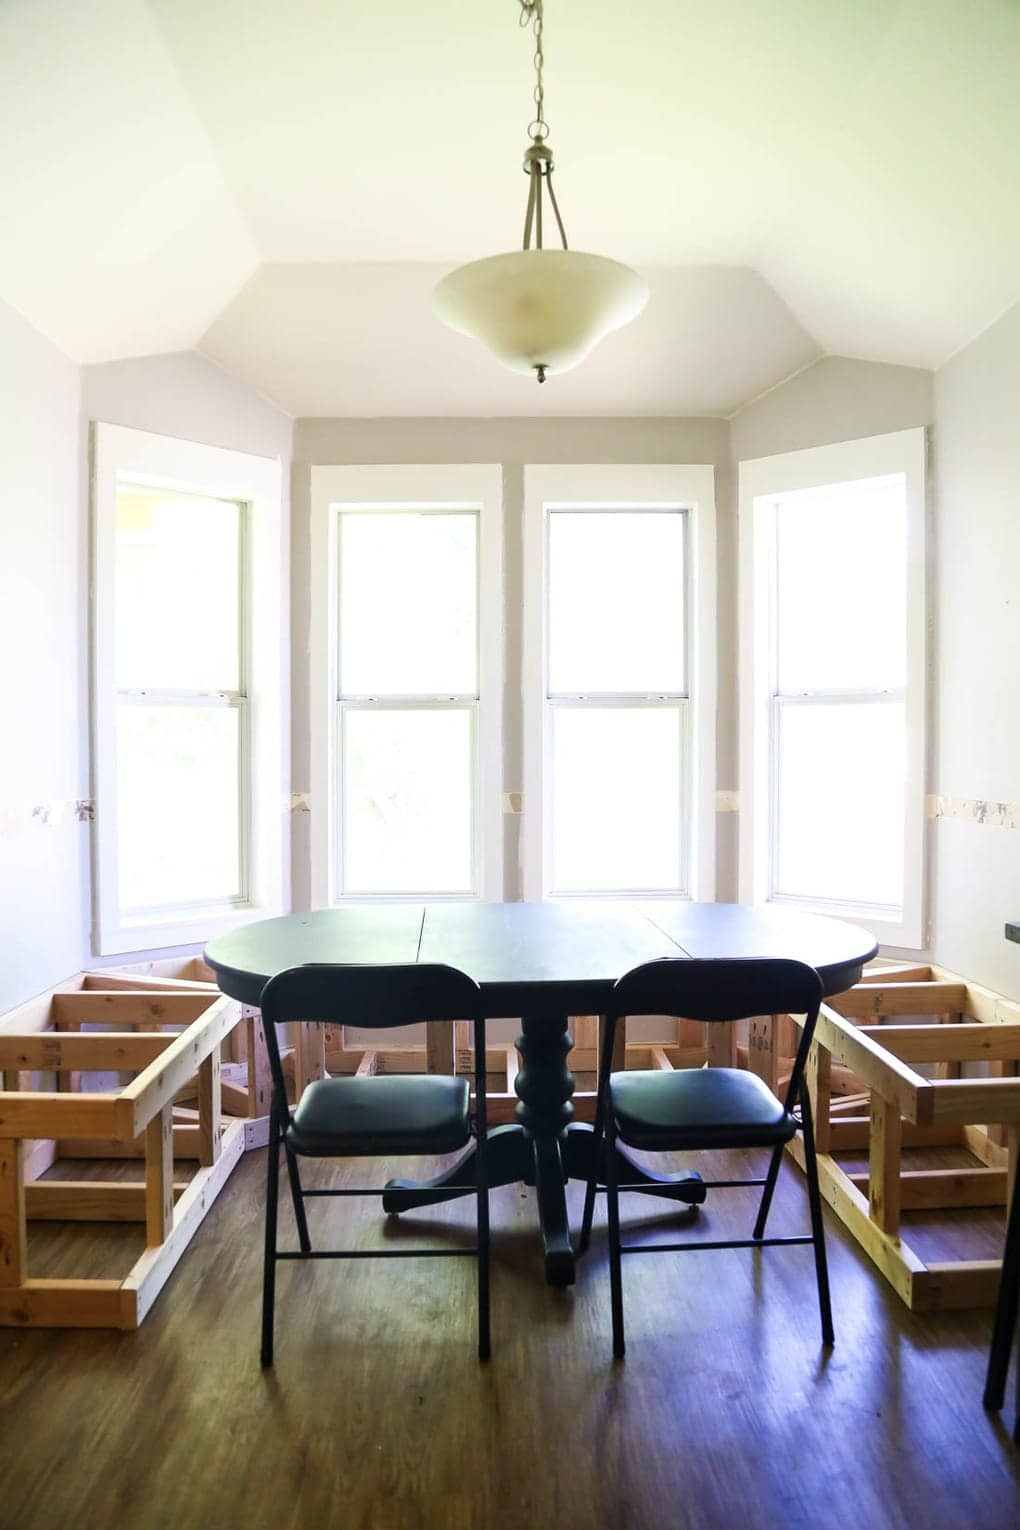 DIY banquette seating for bay window